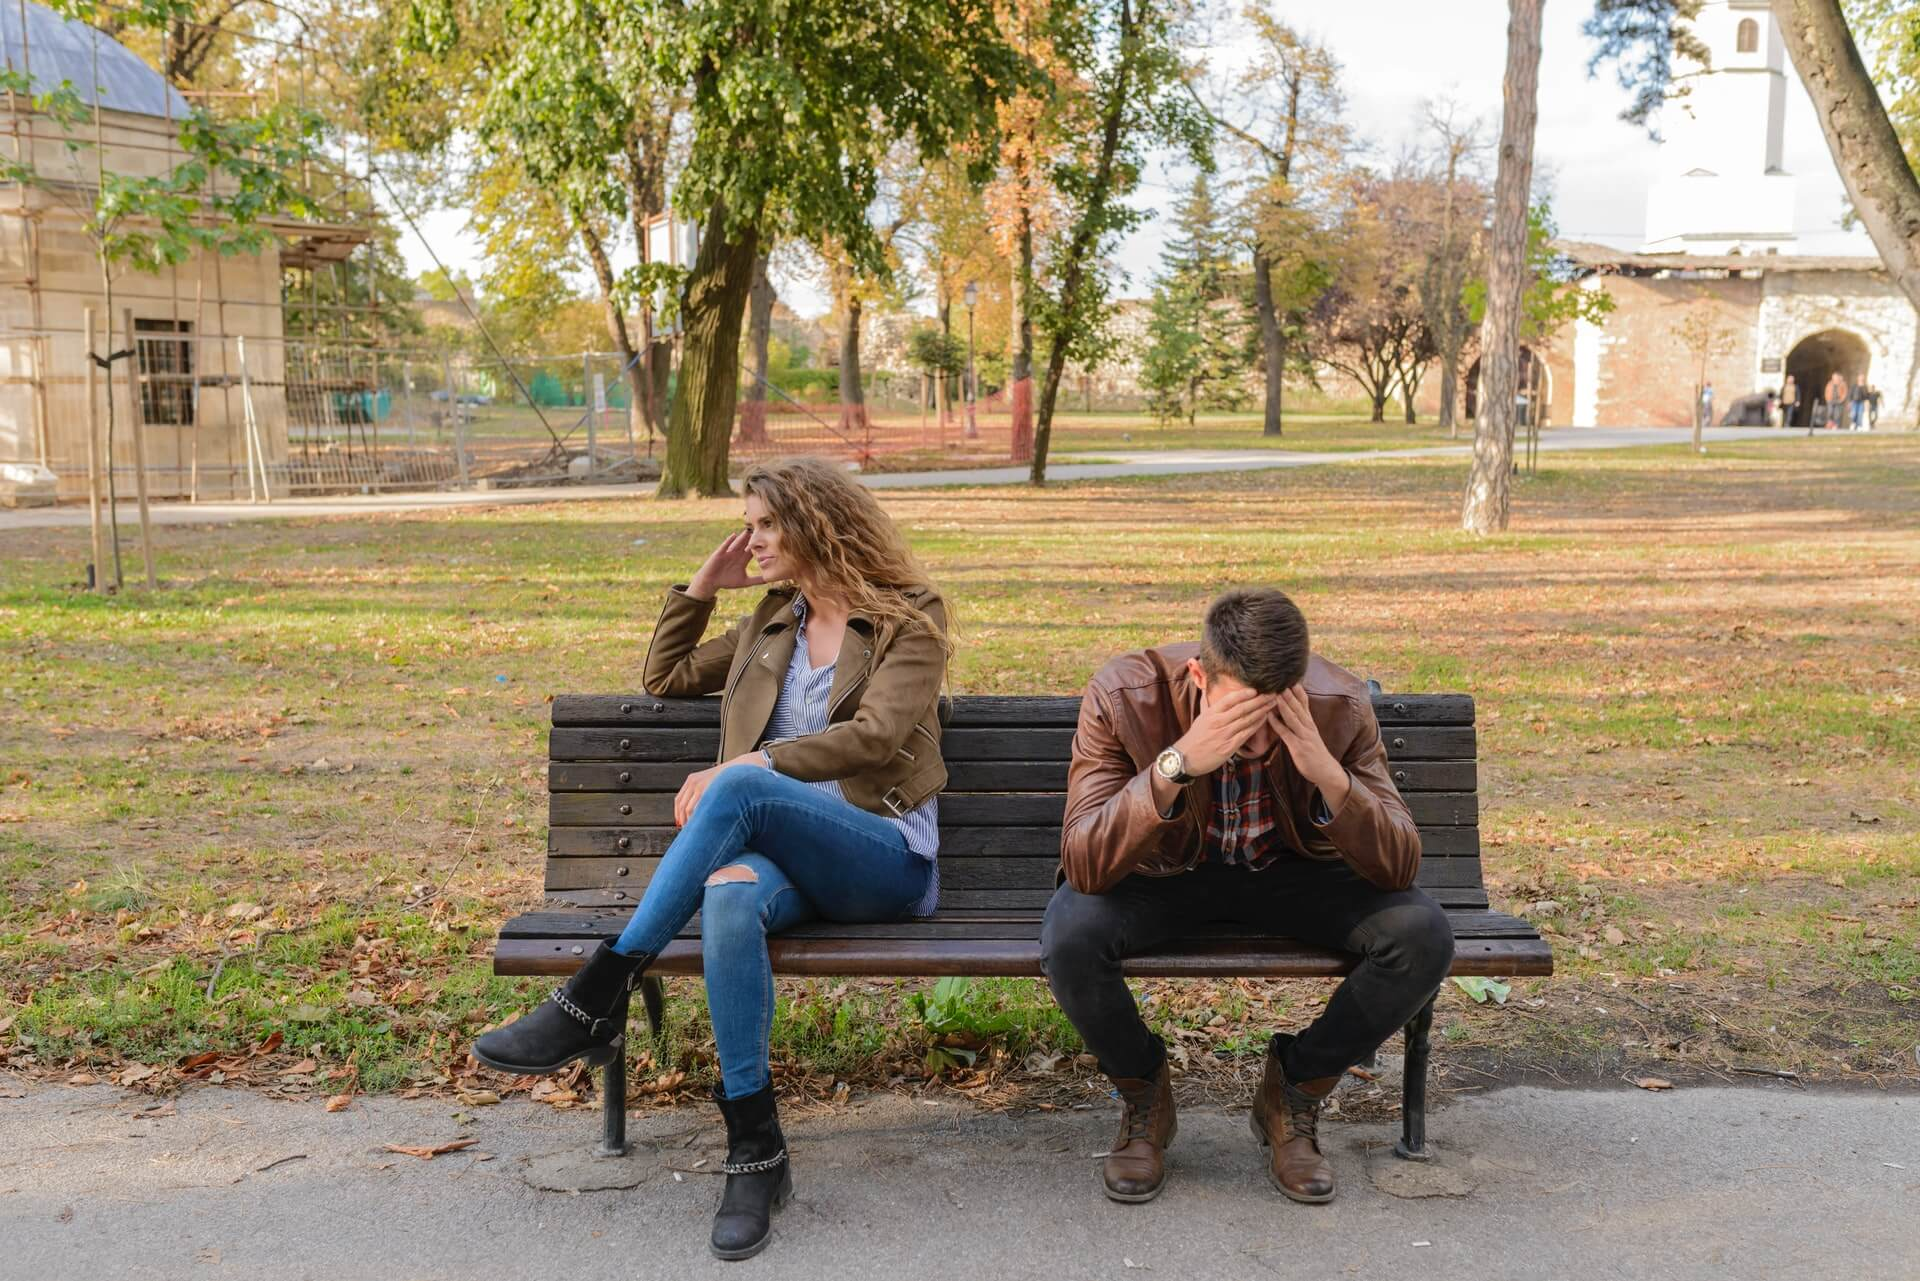 unhappy couple sitting on bench arguing